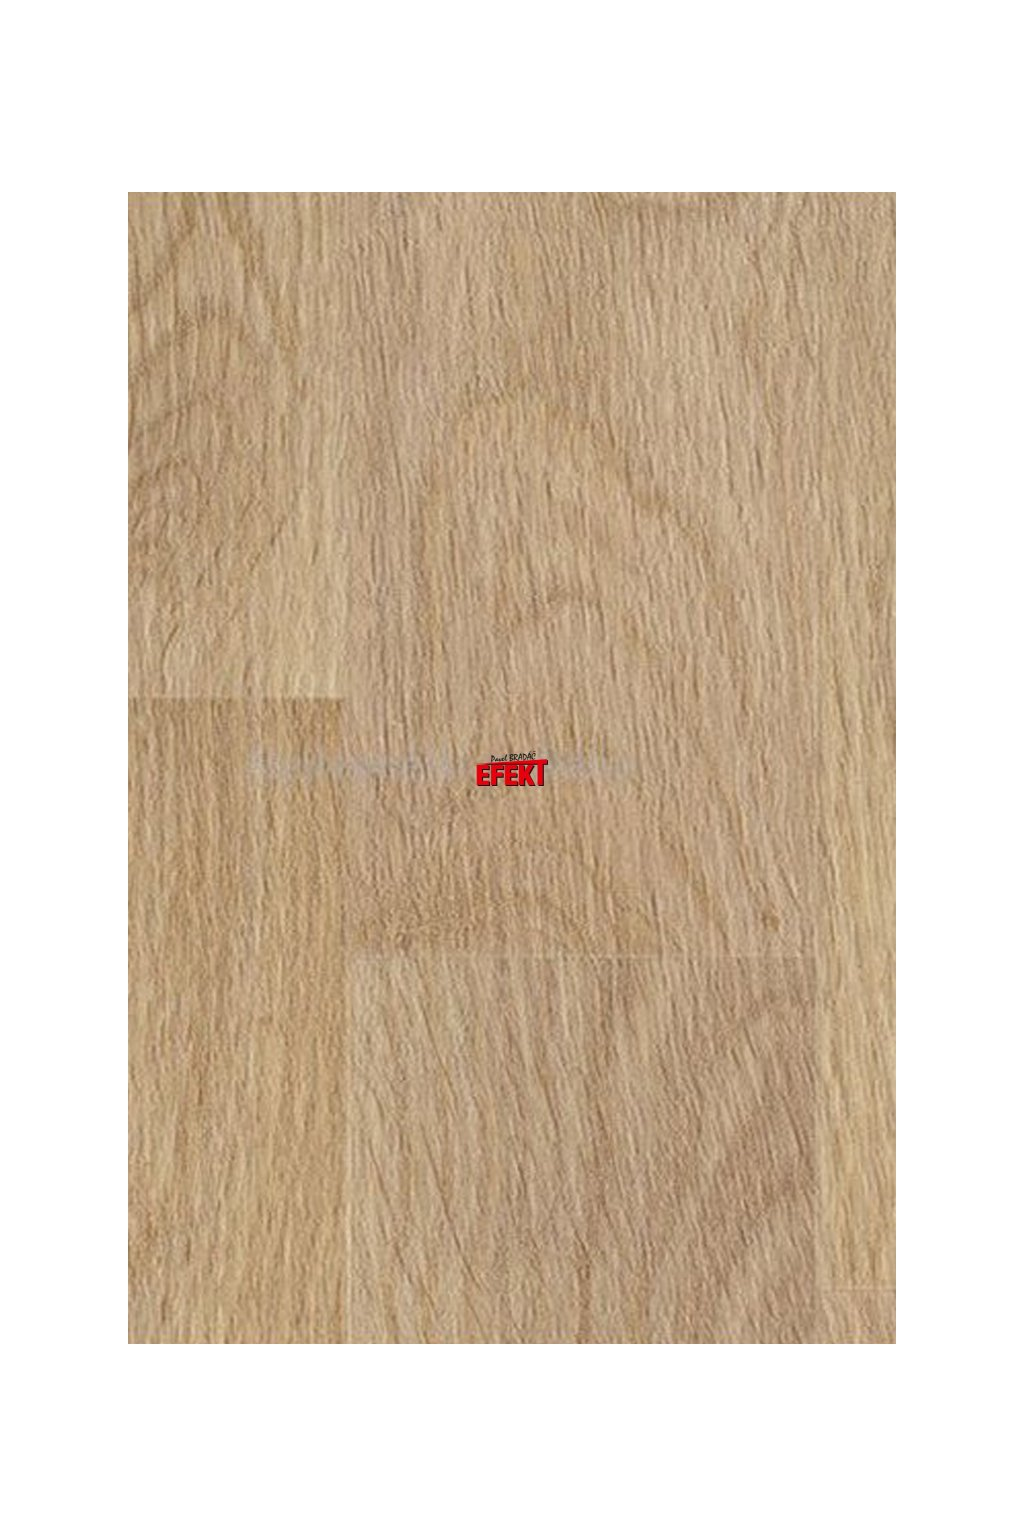 Gerflor Timberline Oak Light 0847